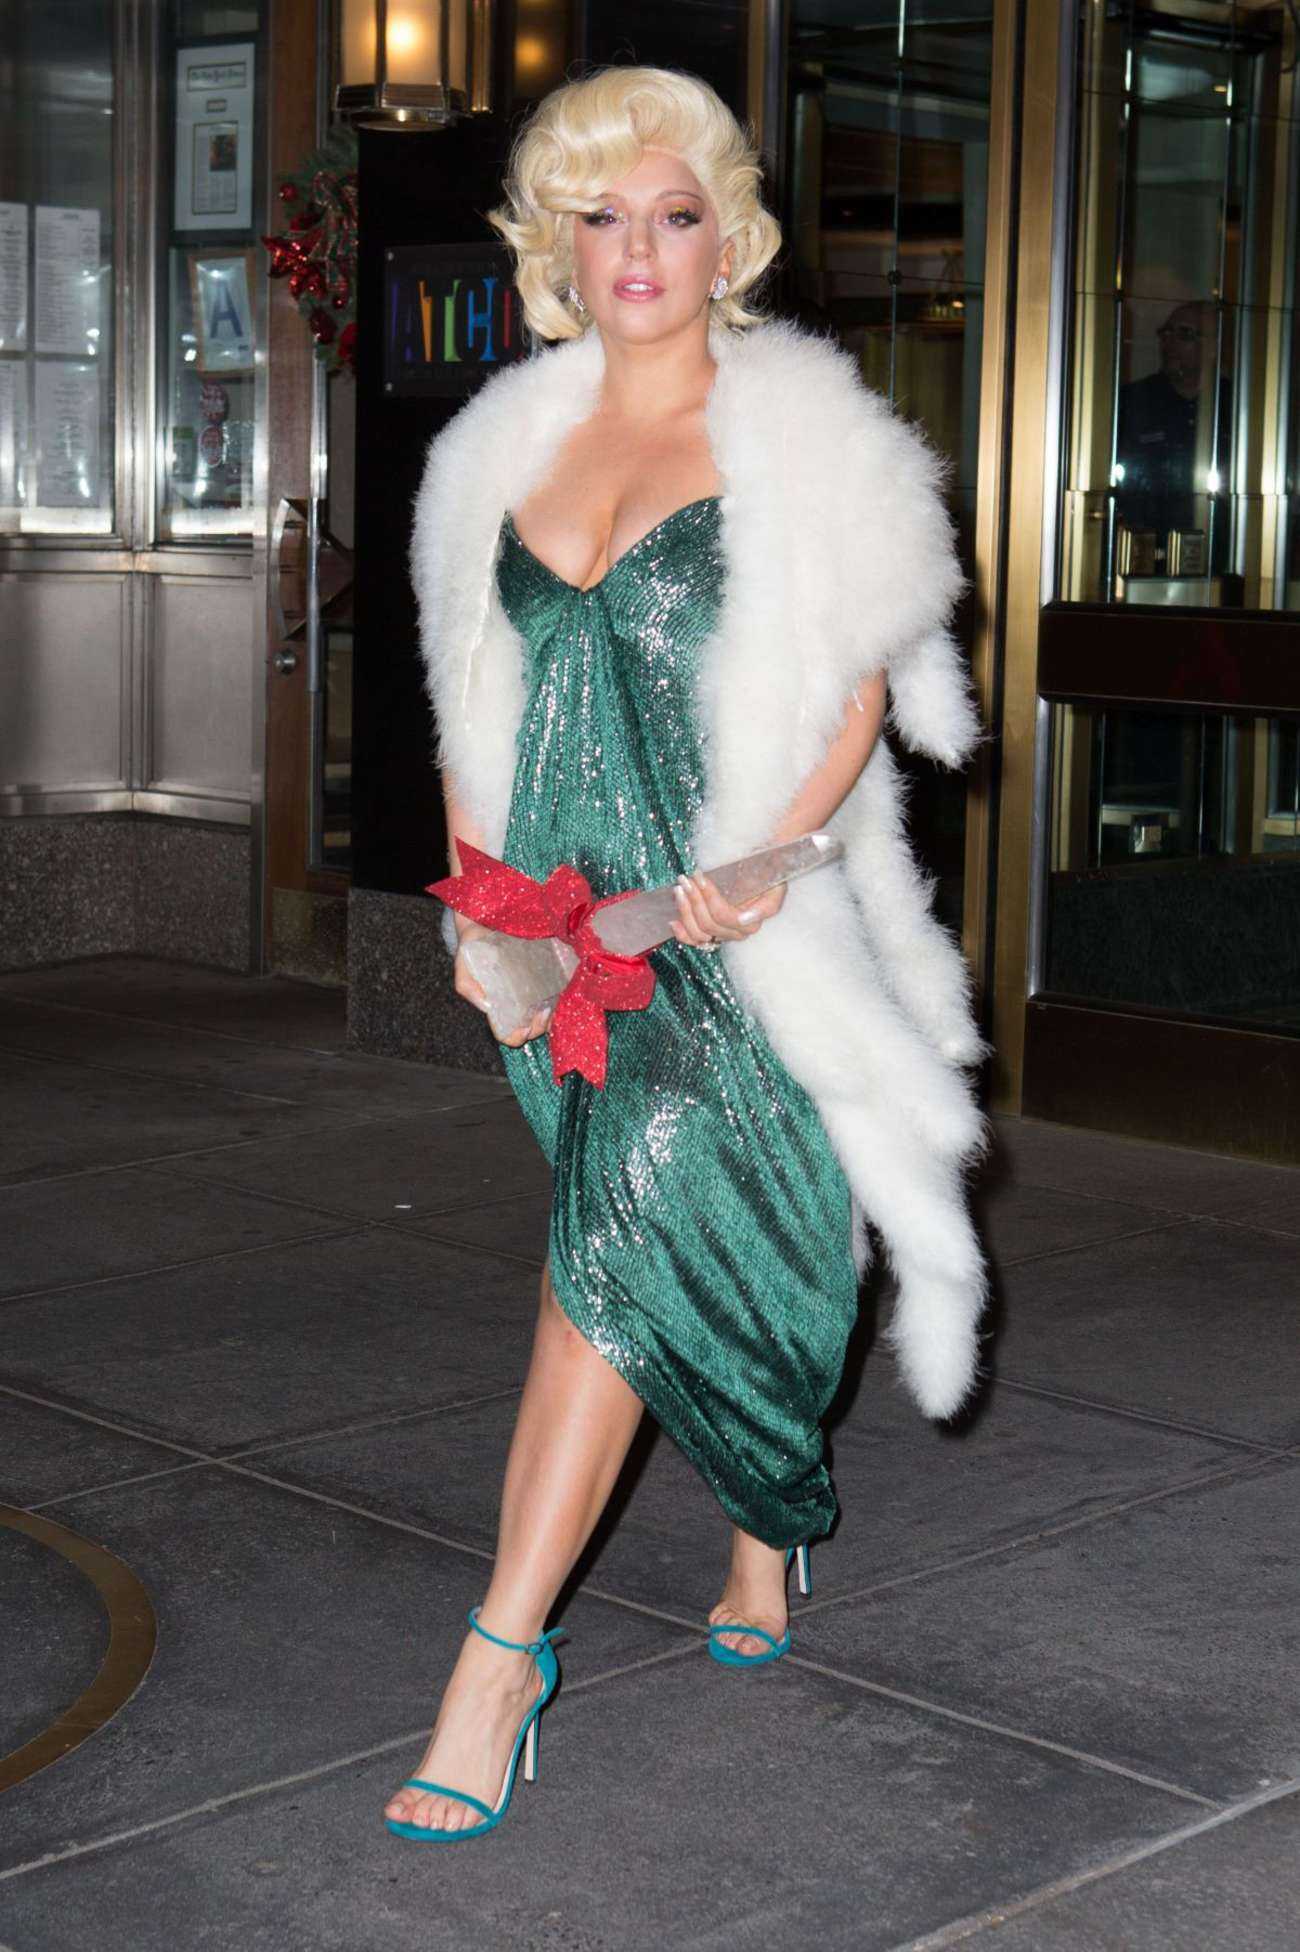 Lady-Gaga-in-Green-Dress--03.jpg